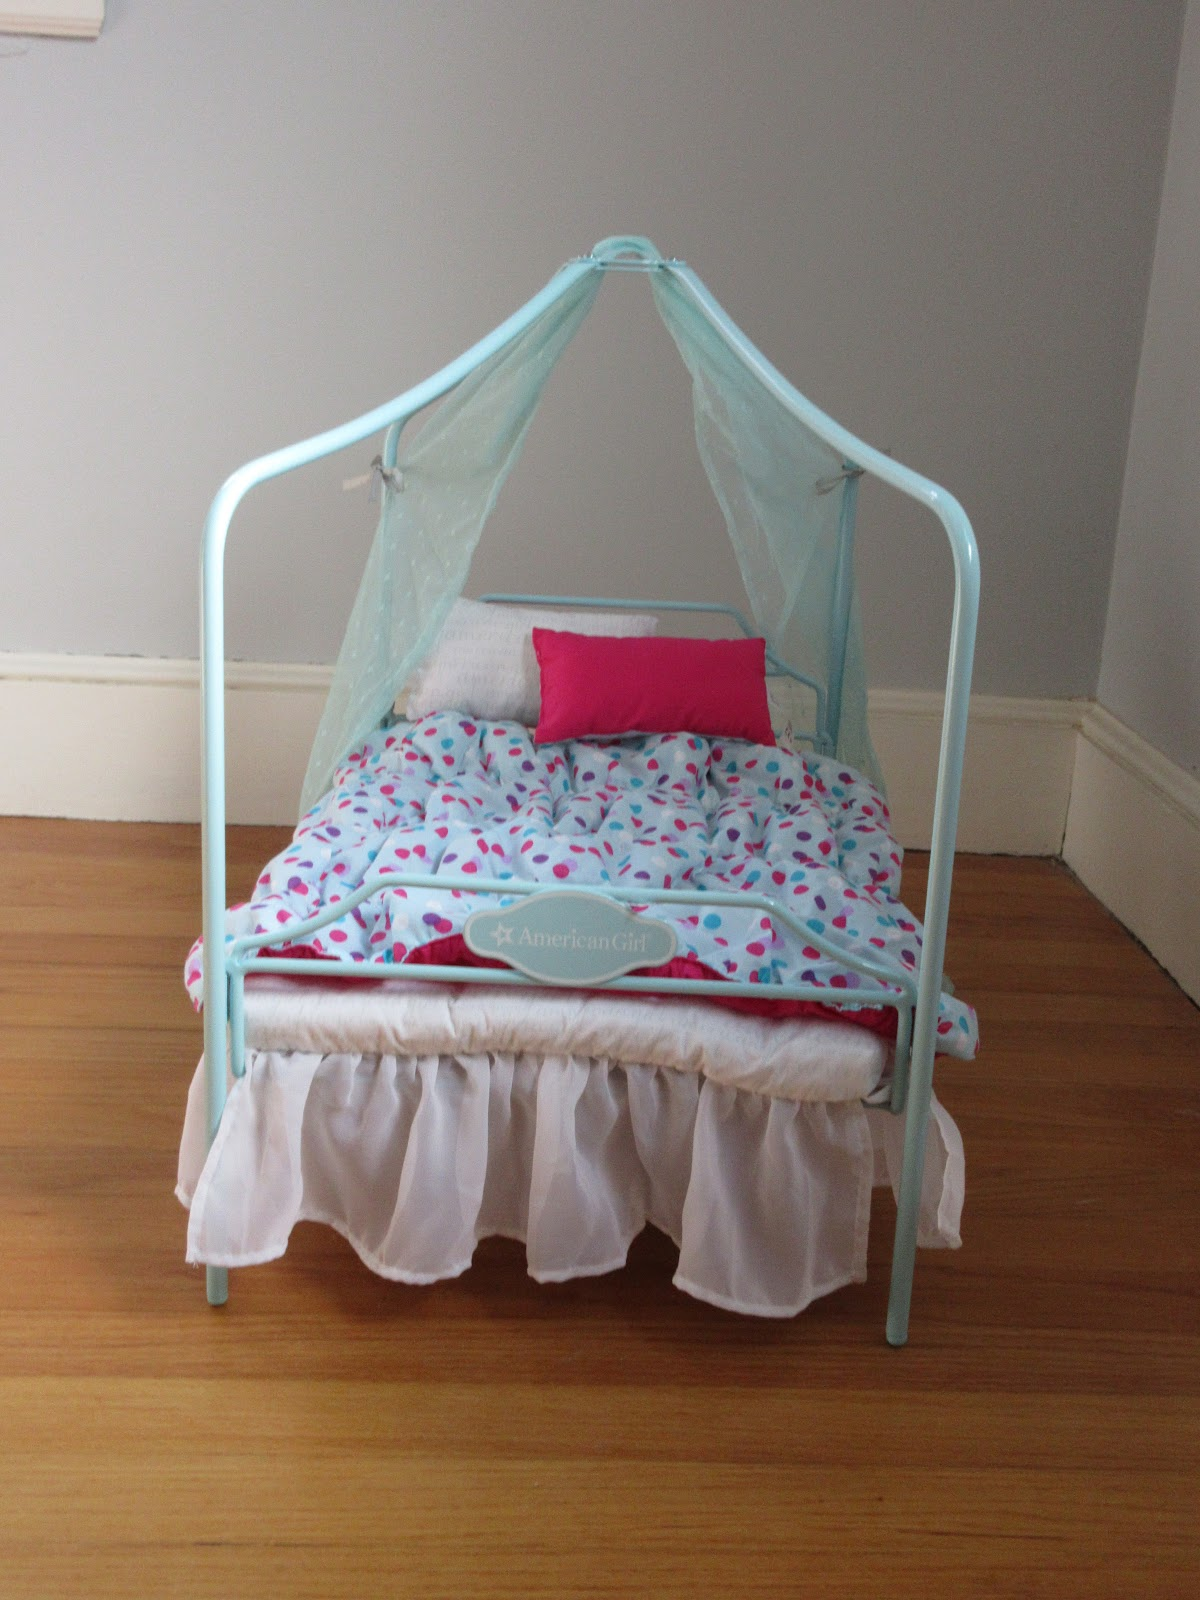 Remember when I said that this would take a while and it would be really hard? I was so wrong. This bed was really easy to assemble and it looks adorable. & Theagdolldreamer: Review of the American Girl Canopy bed